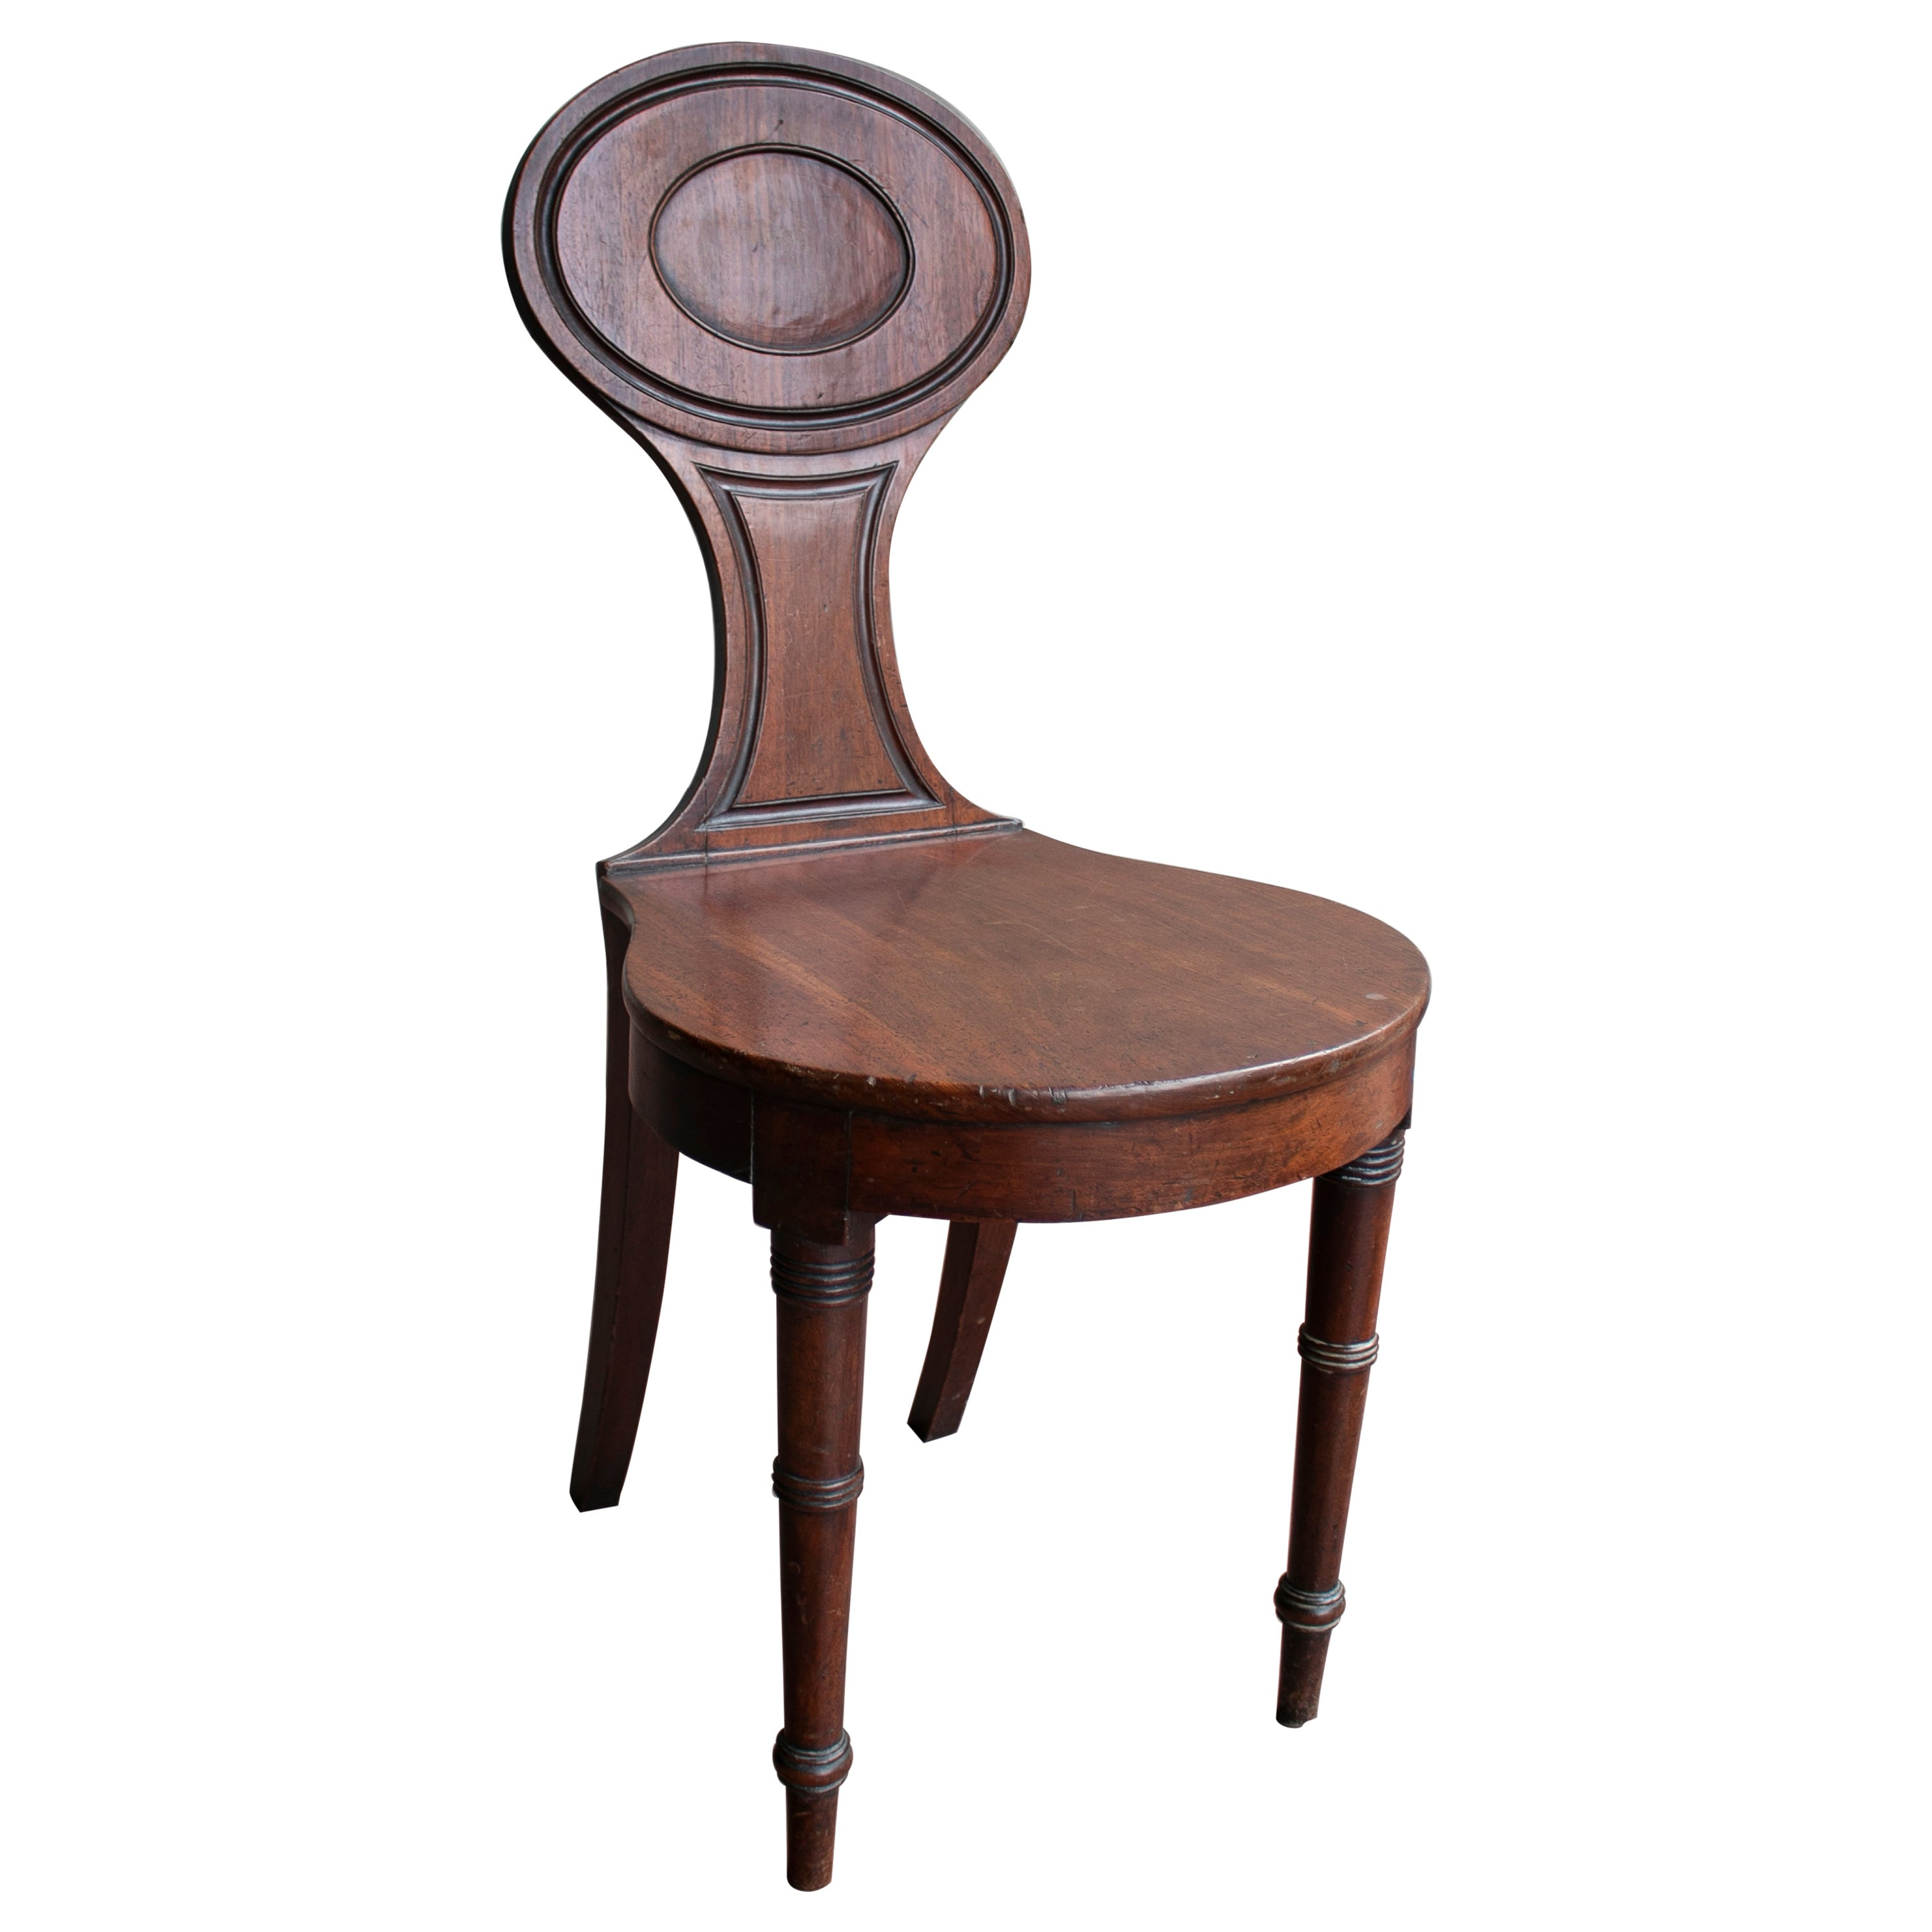 1920s English Smokers Wooden Chair